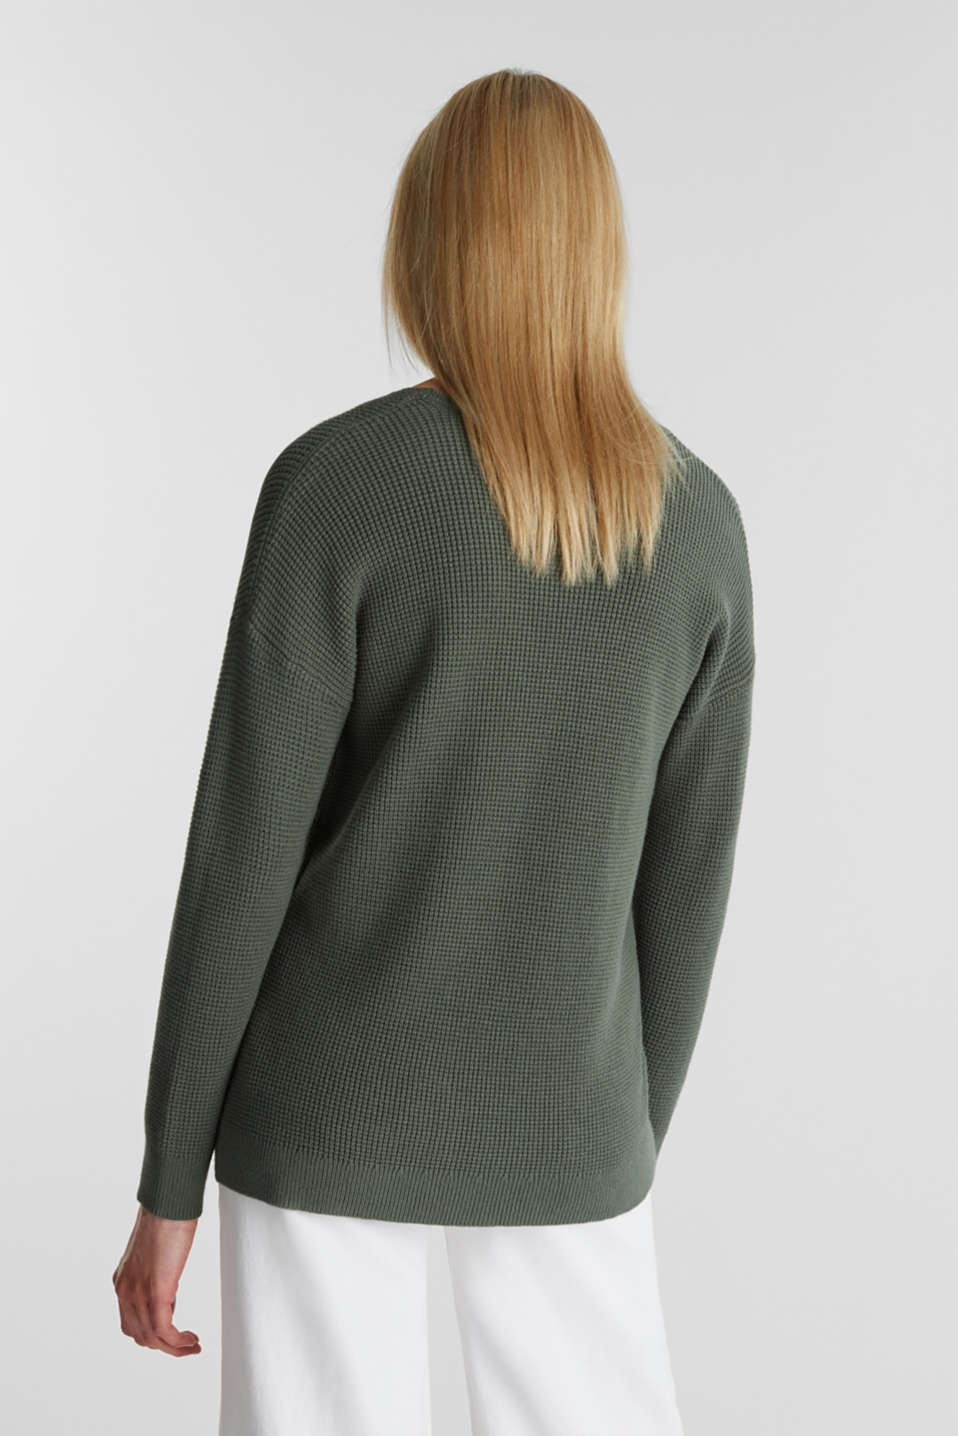 Jumper with a rice grain texture, KHAKI GREEN, detail image number 3